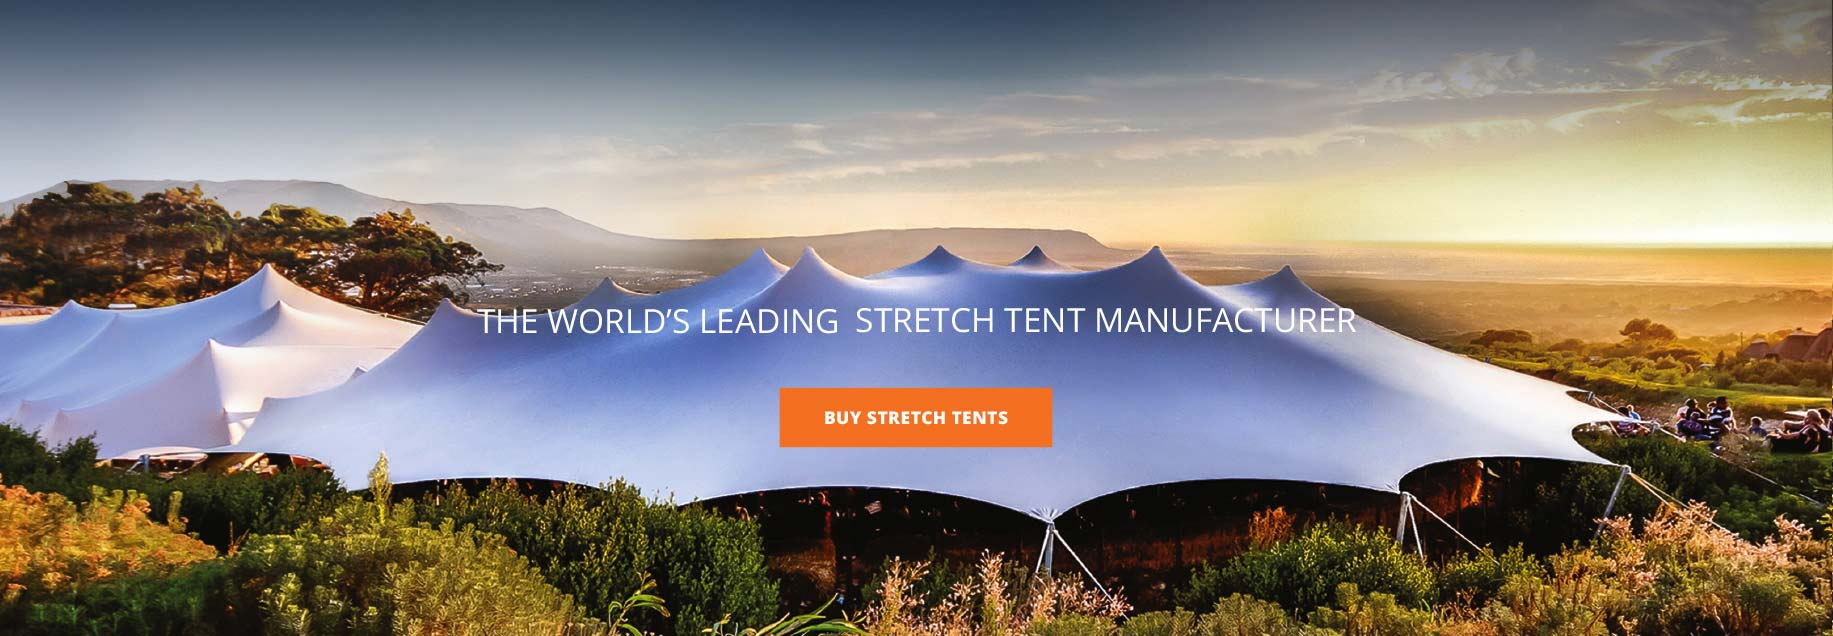 & Freeform® Tents | Stretch Tents for Sale | Bedouin Tents for Sale